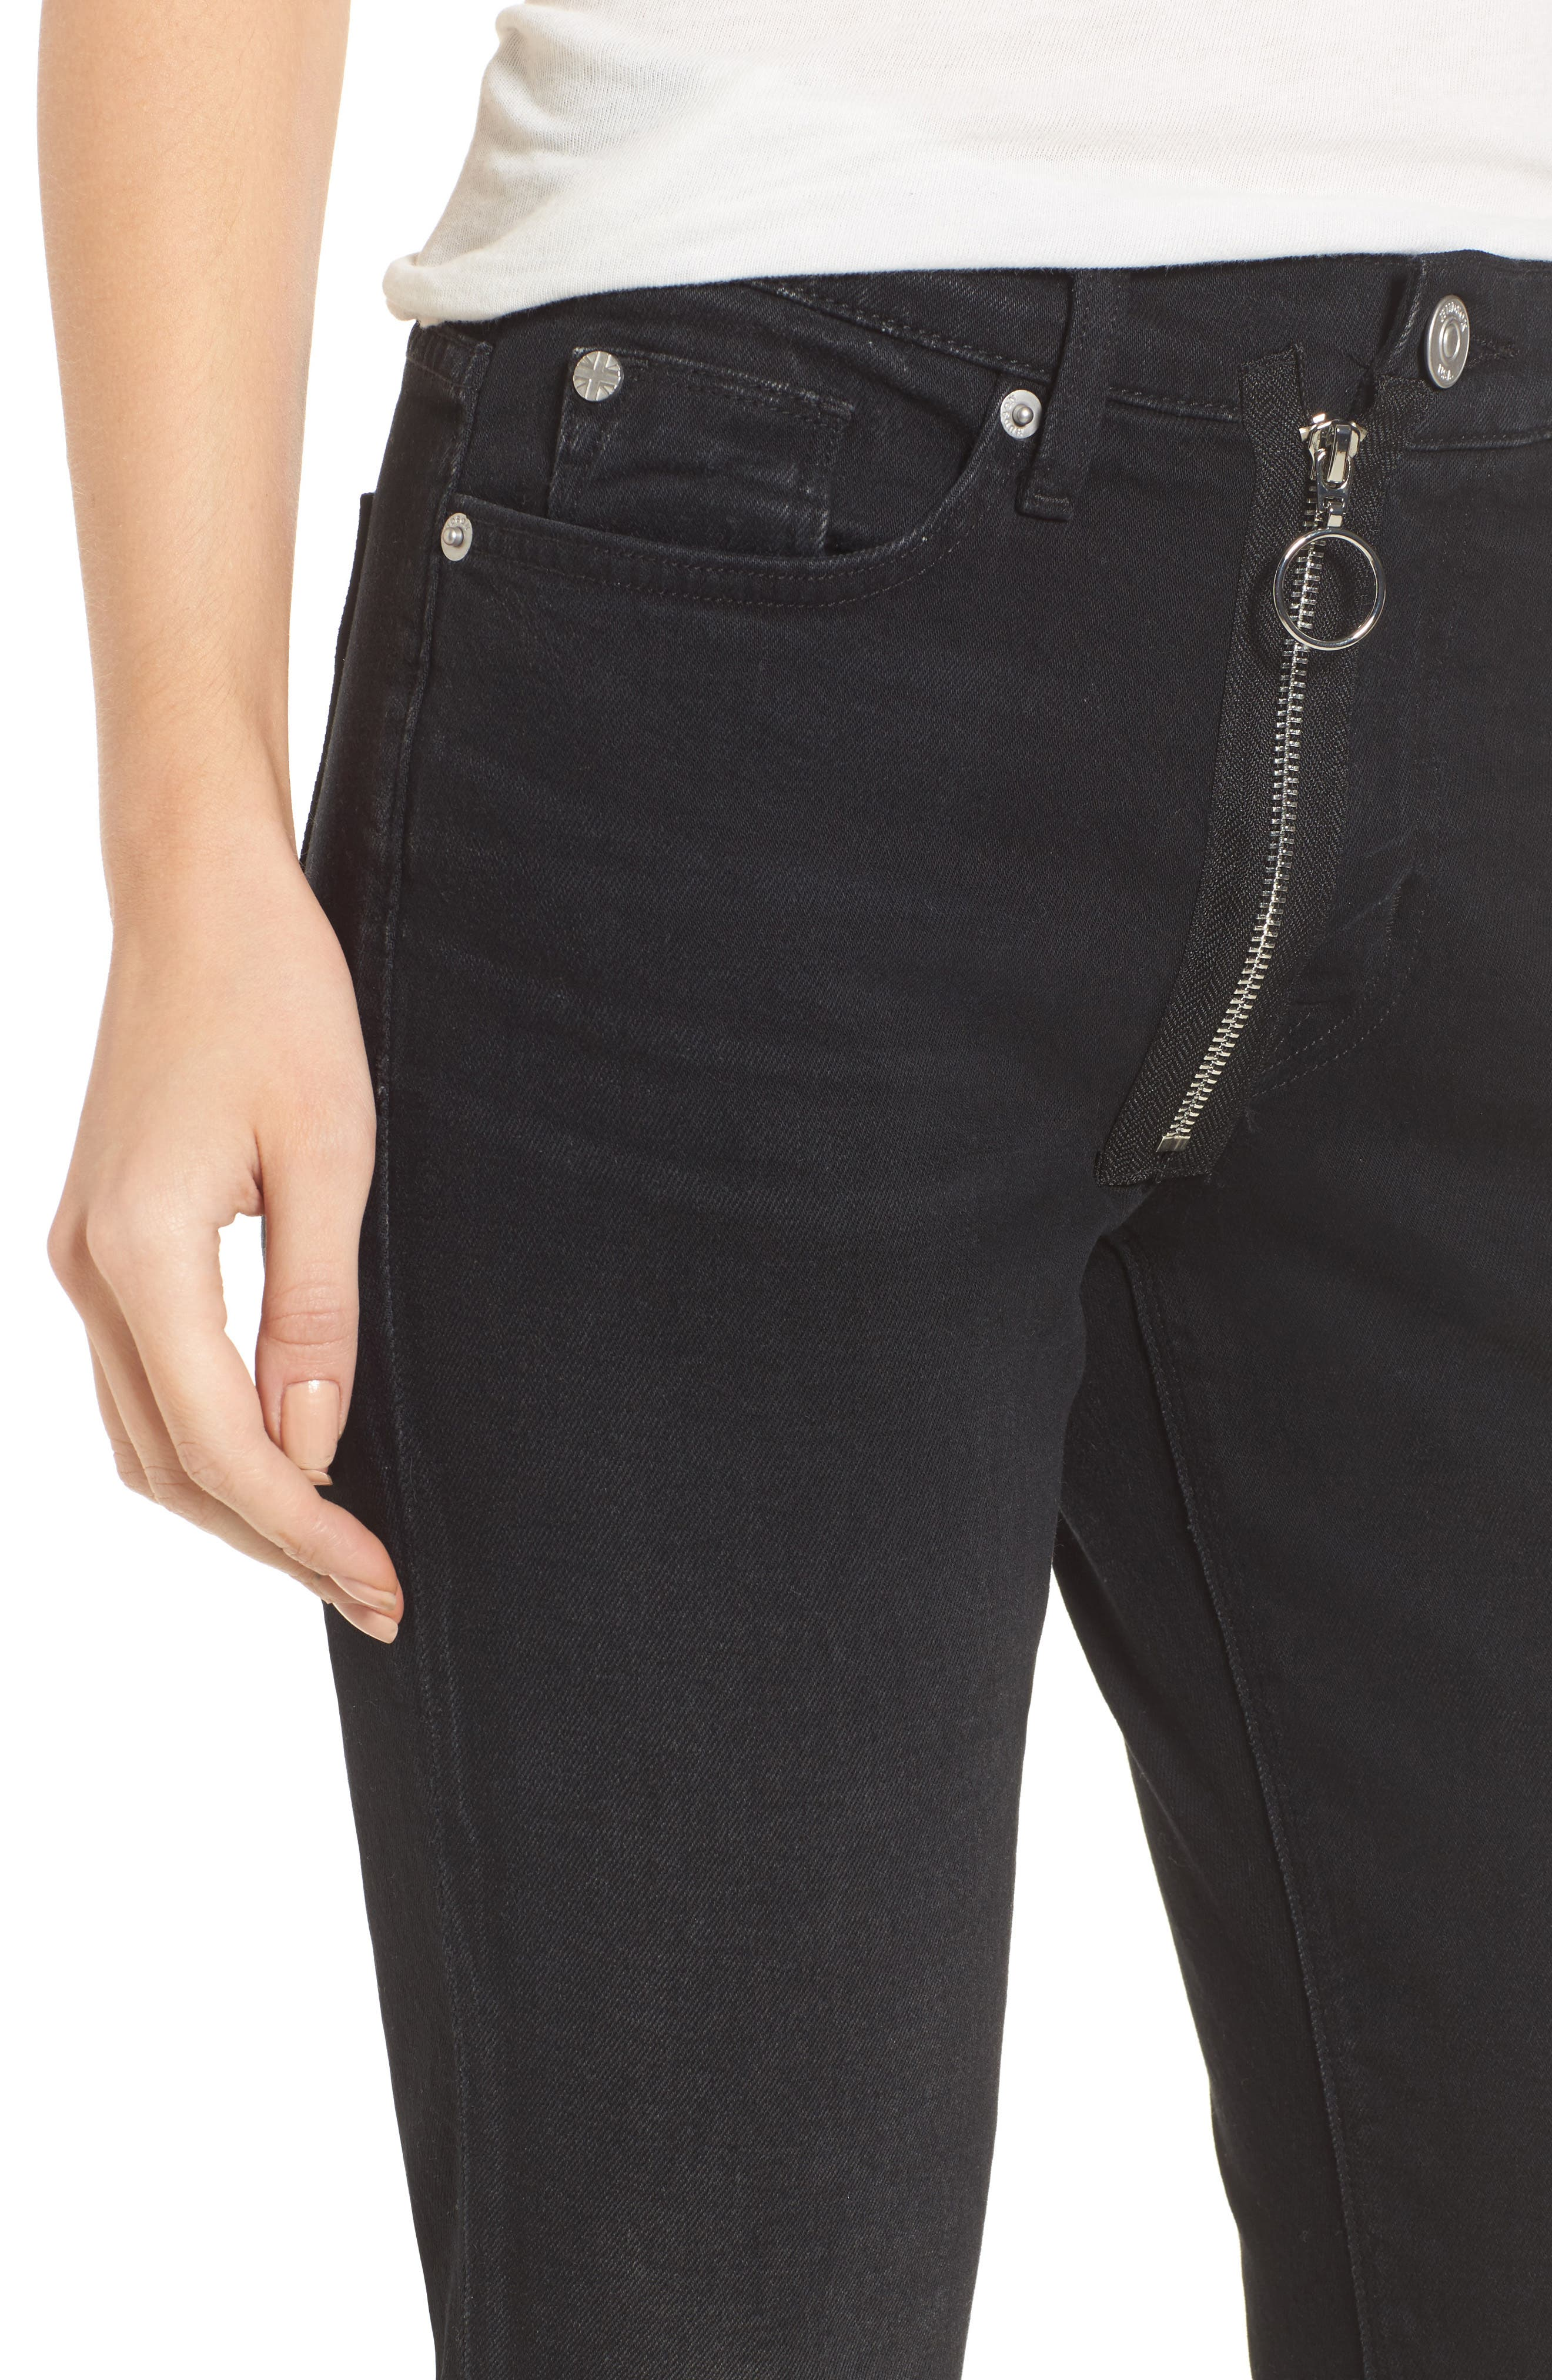 Riley Relaxed Straight Fit Jeans,                             Alternate thumbnail 4, color,                             001